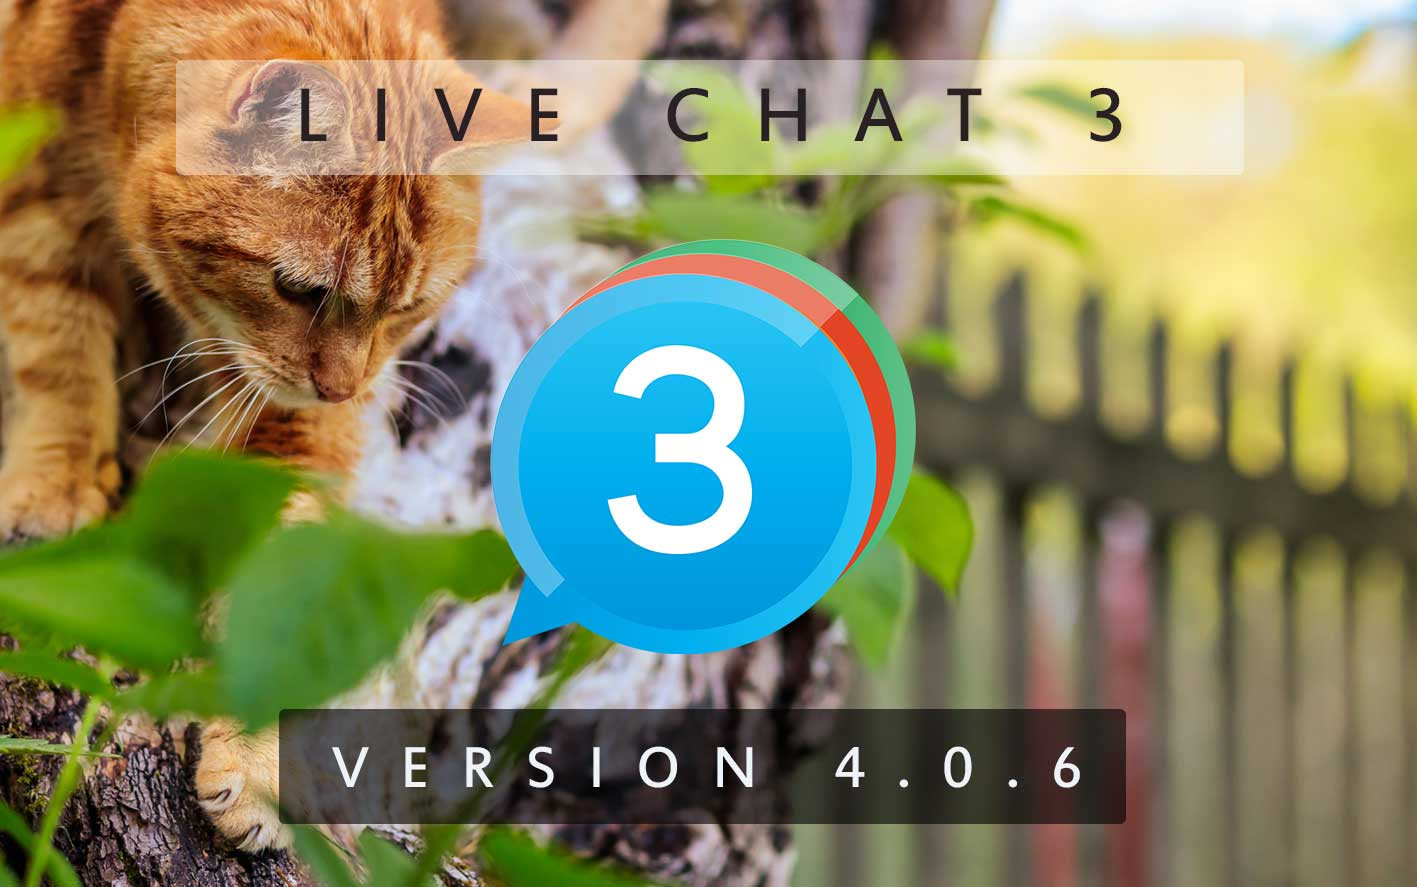 Live Chat 3 - Version 4.0.6